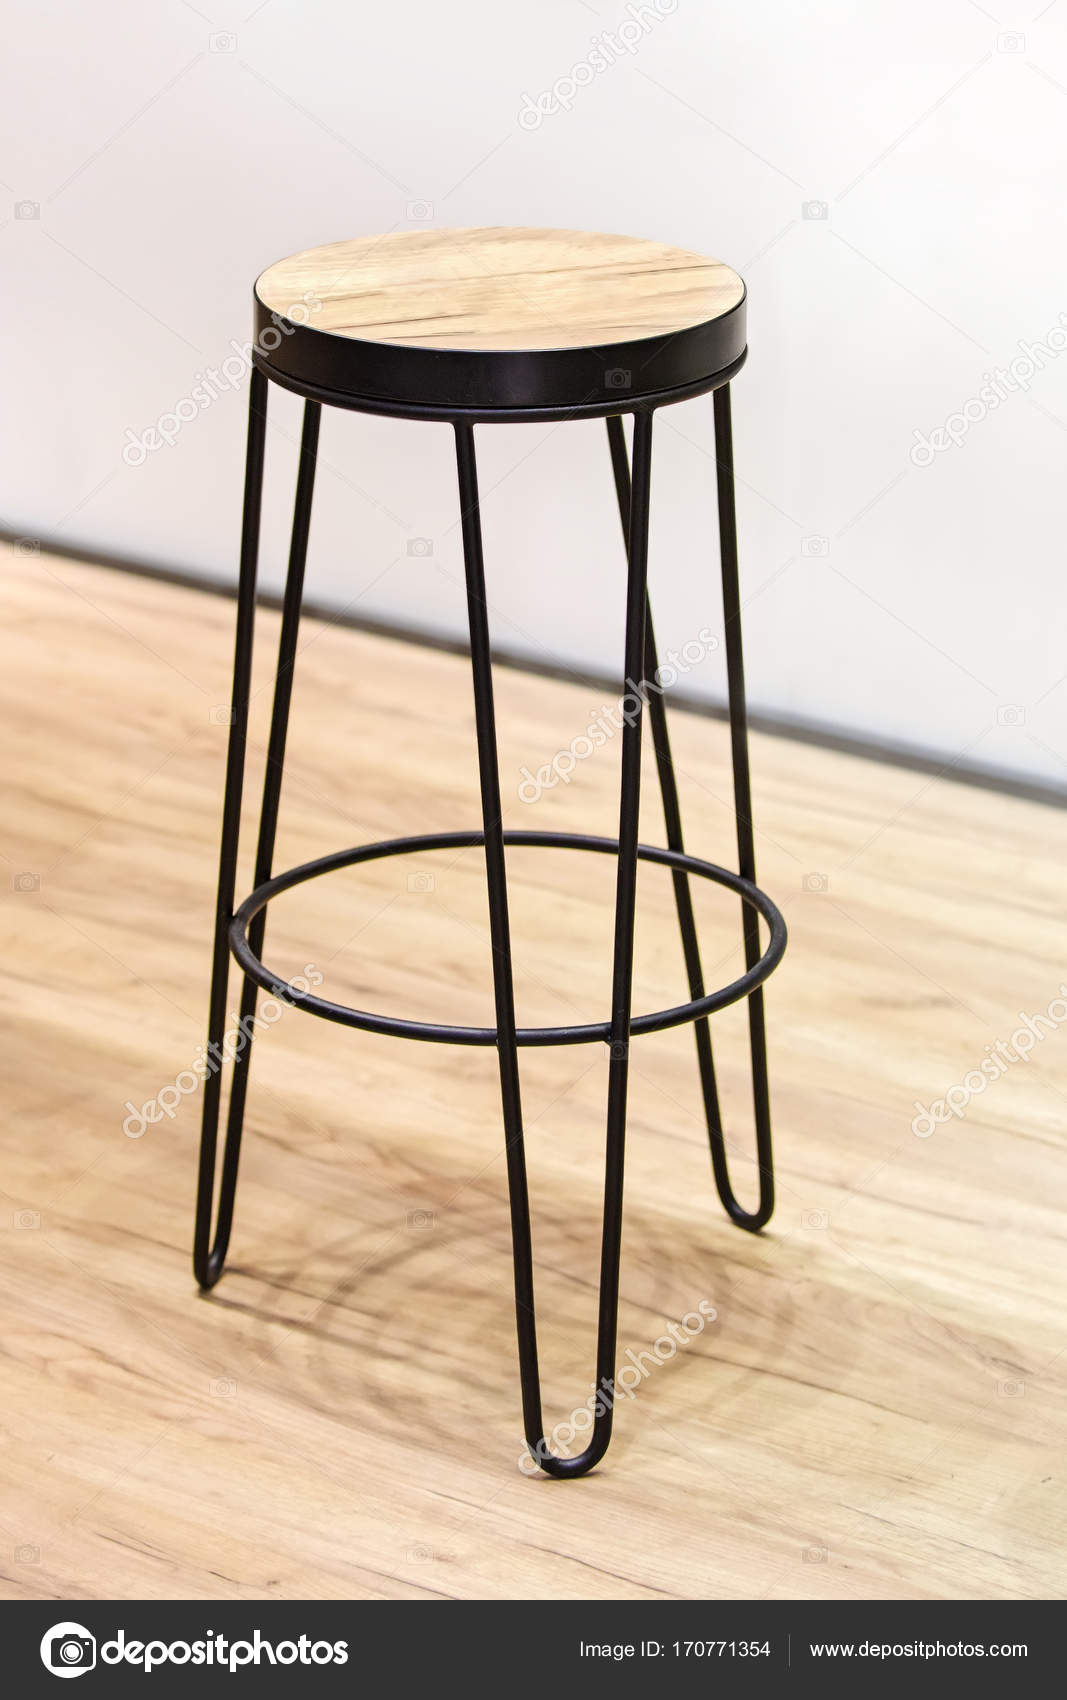 Fashionable Wooden High Chair For Restaurant Bar Wood And Forged